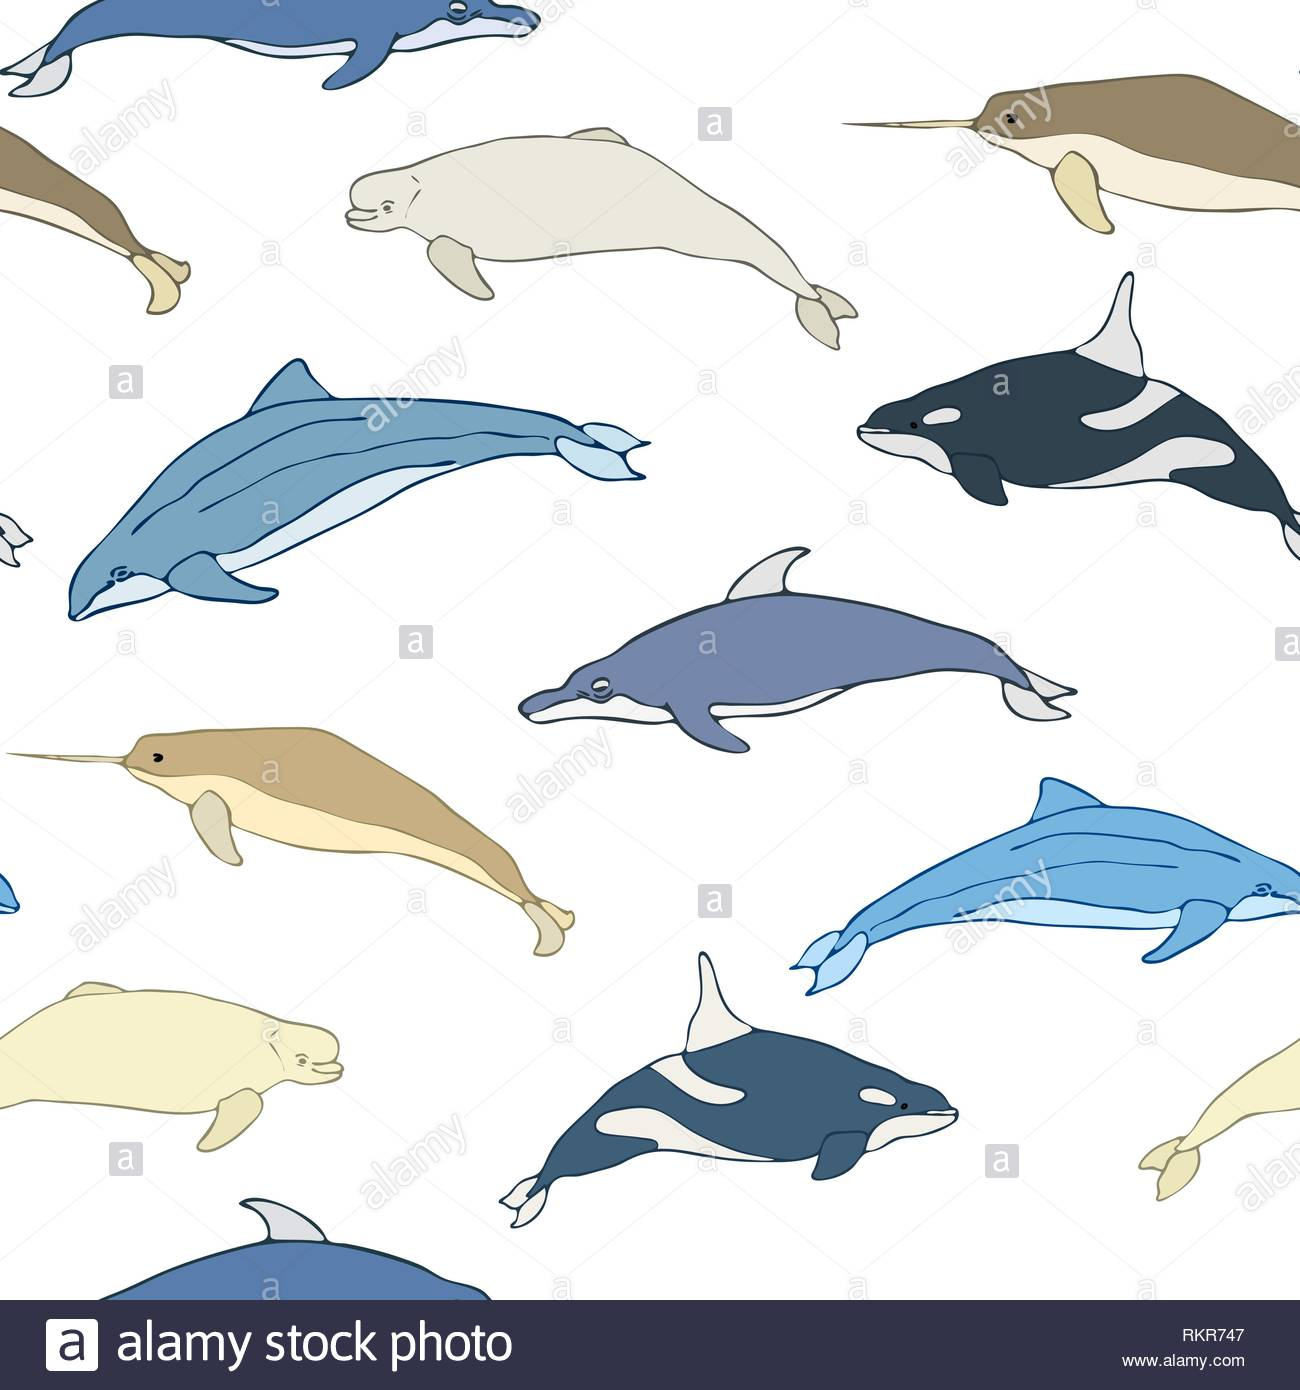 Seamless pattern of cartoon whales Set of species of whales on a 1300x1390